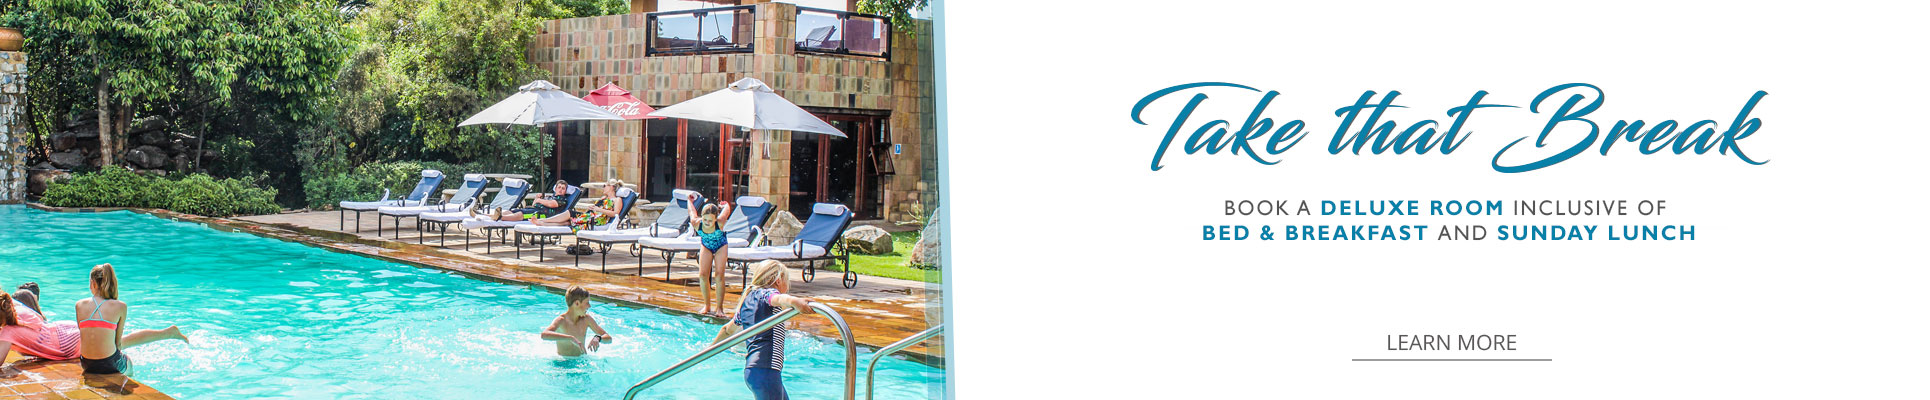 Misty Hills Summer Getaways in Muldersdrift, Gauteng